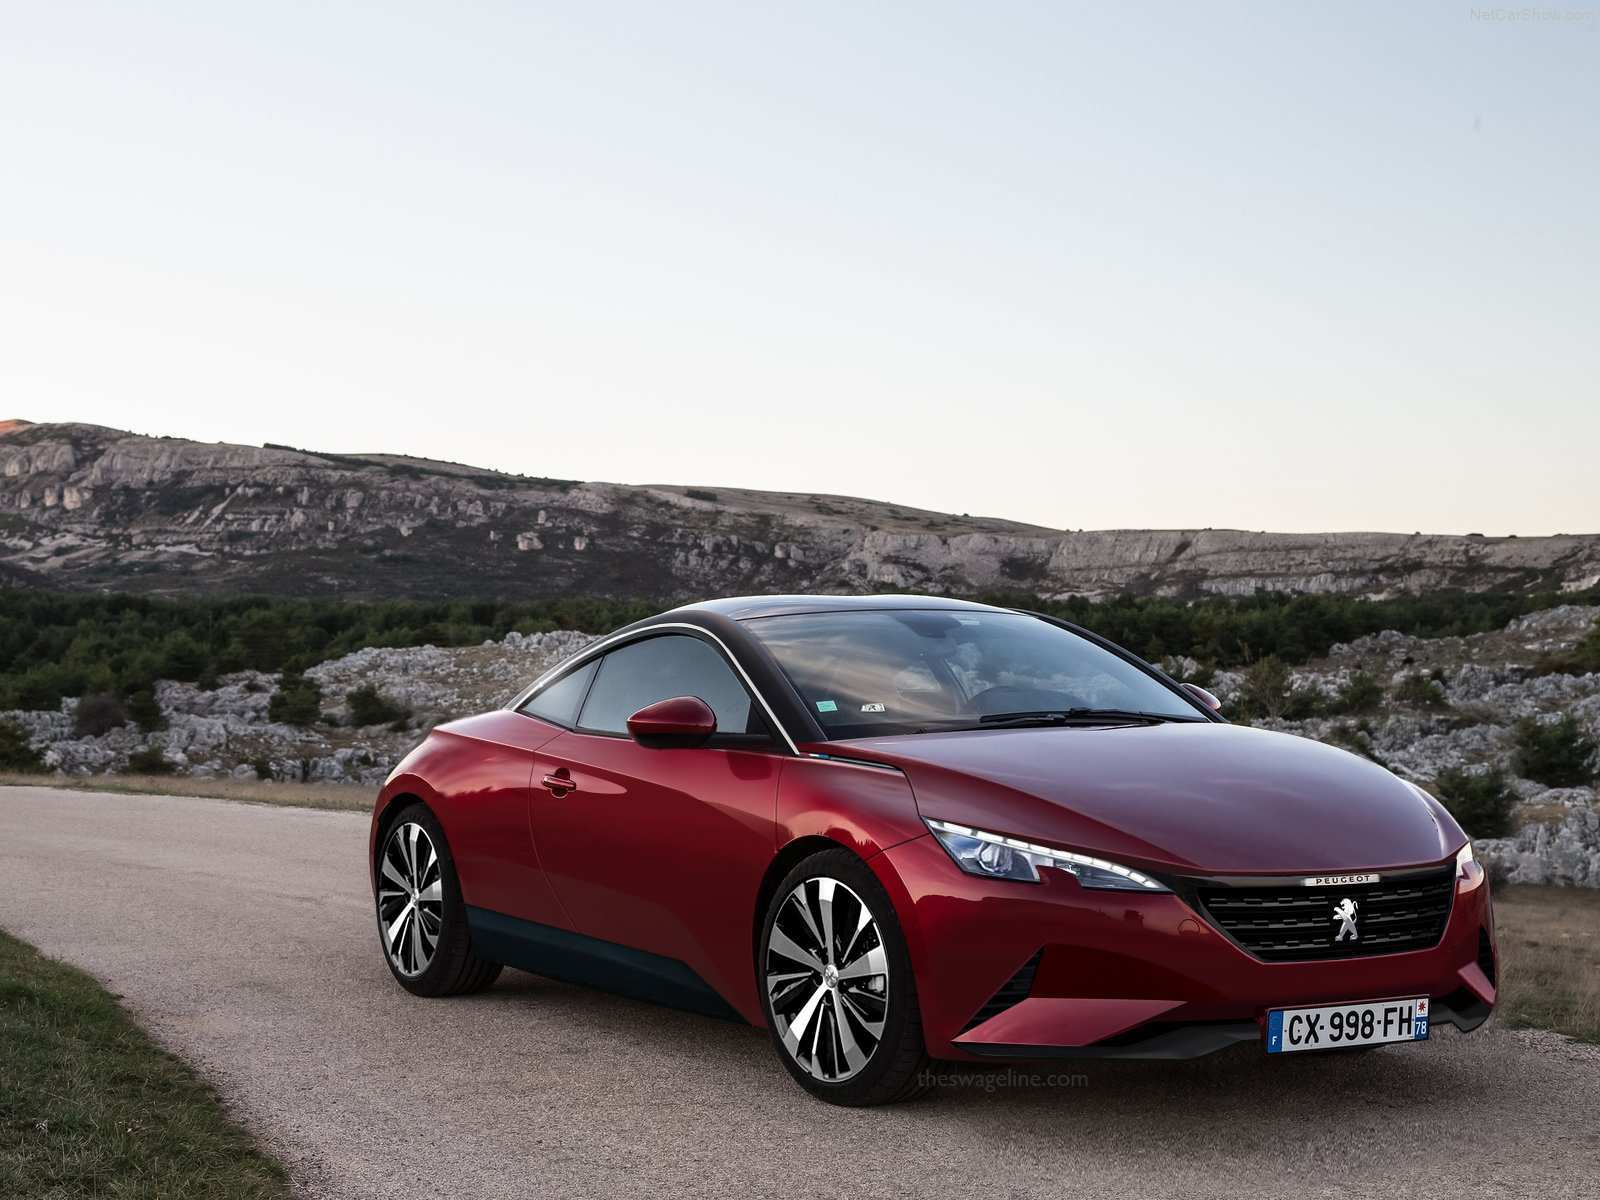 56 New Peugeot Coupe 2019 Images